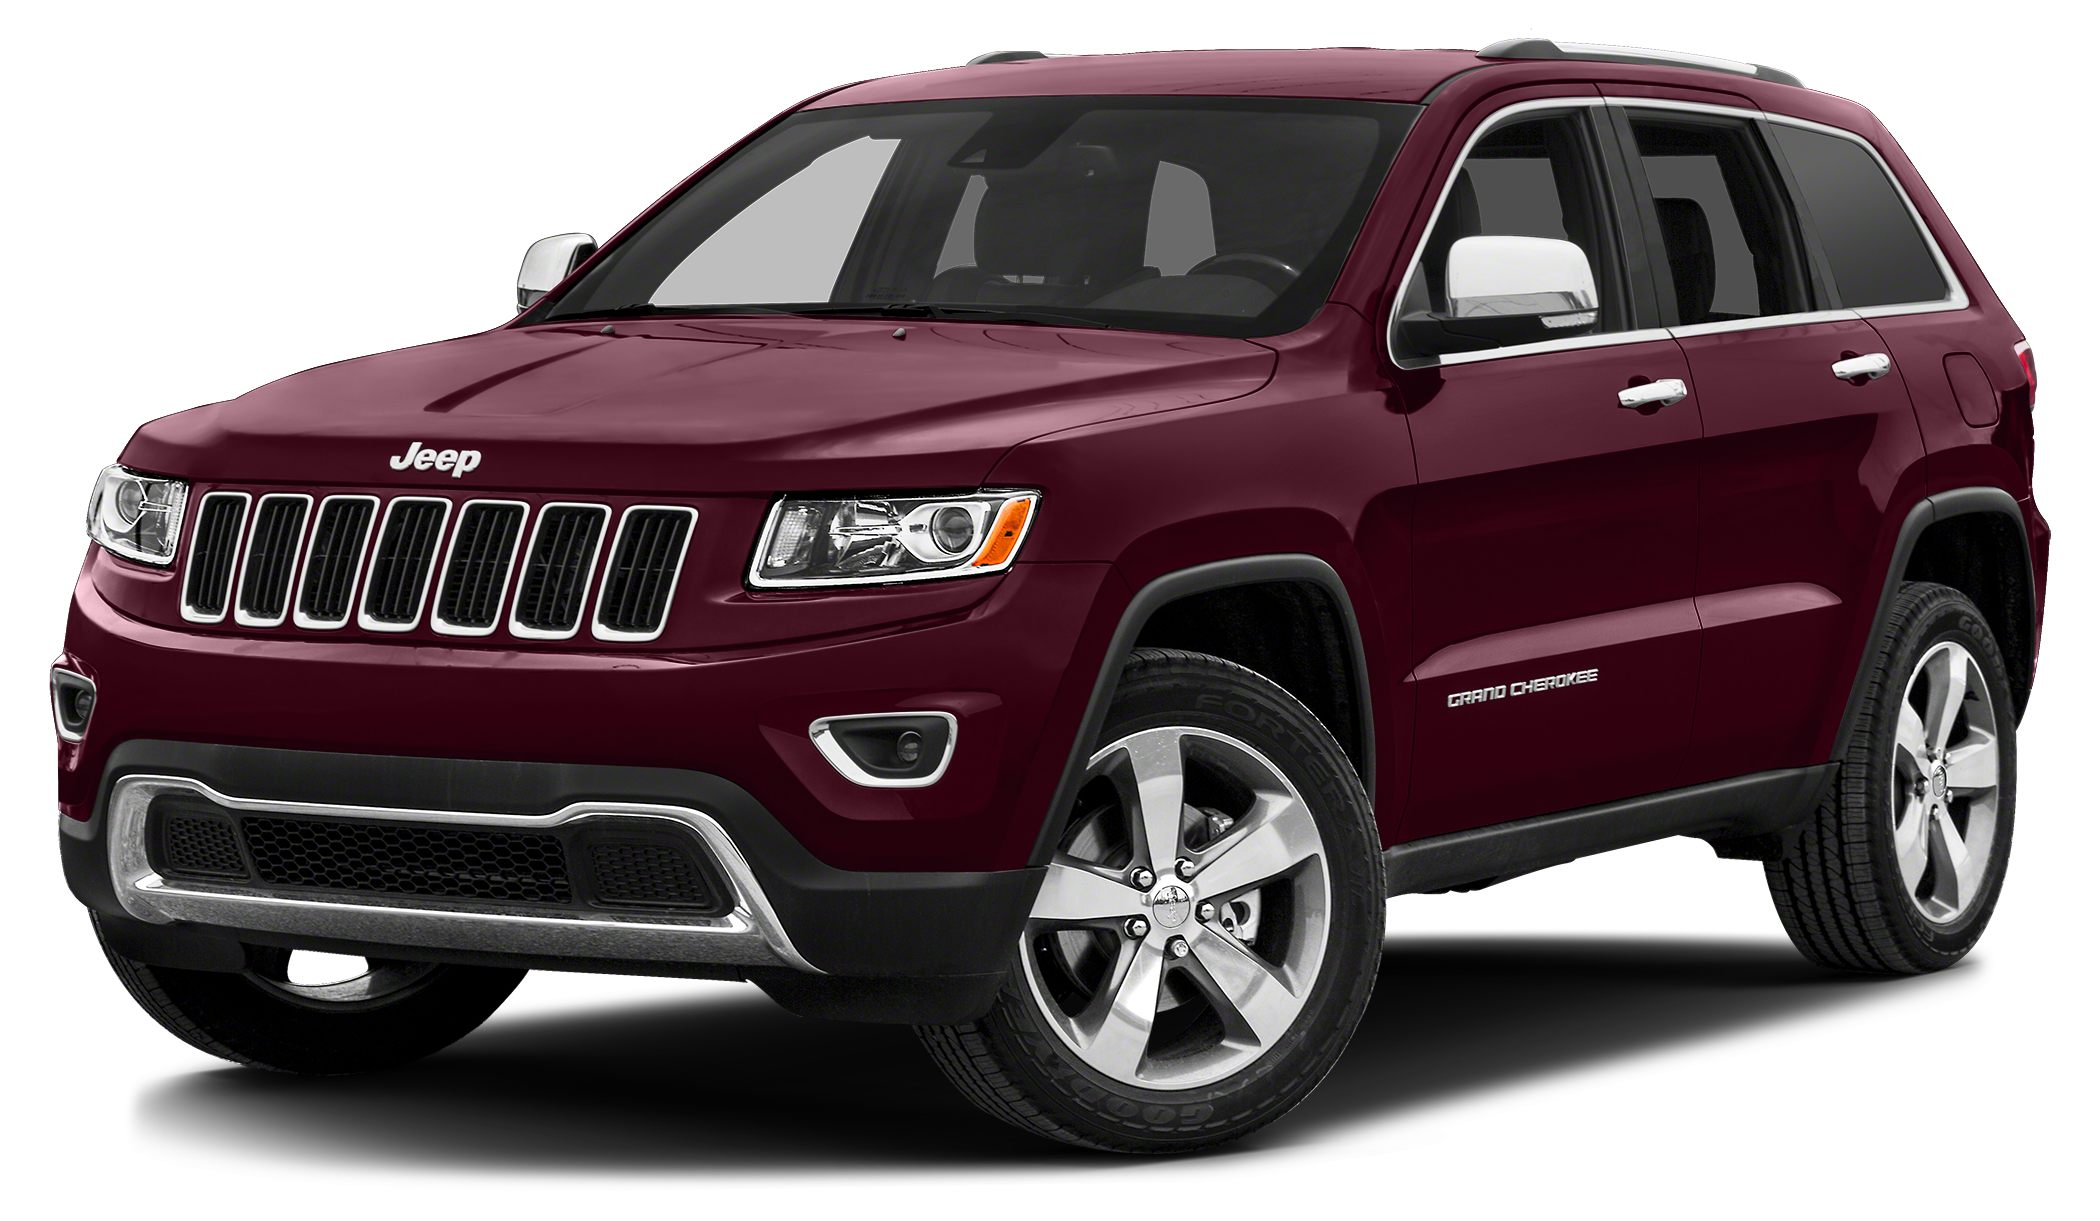 2017 Jeep Grand Cherokee Limited Red Hot Nice SUV Imagine yourself behind the wheel of this gorg